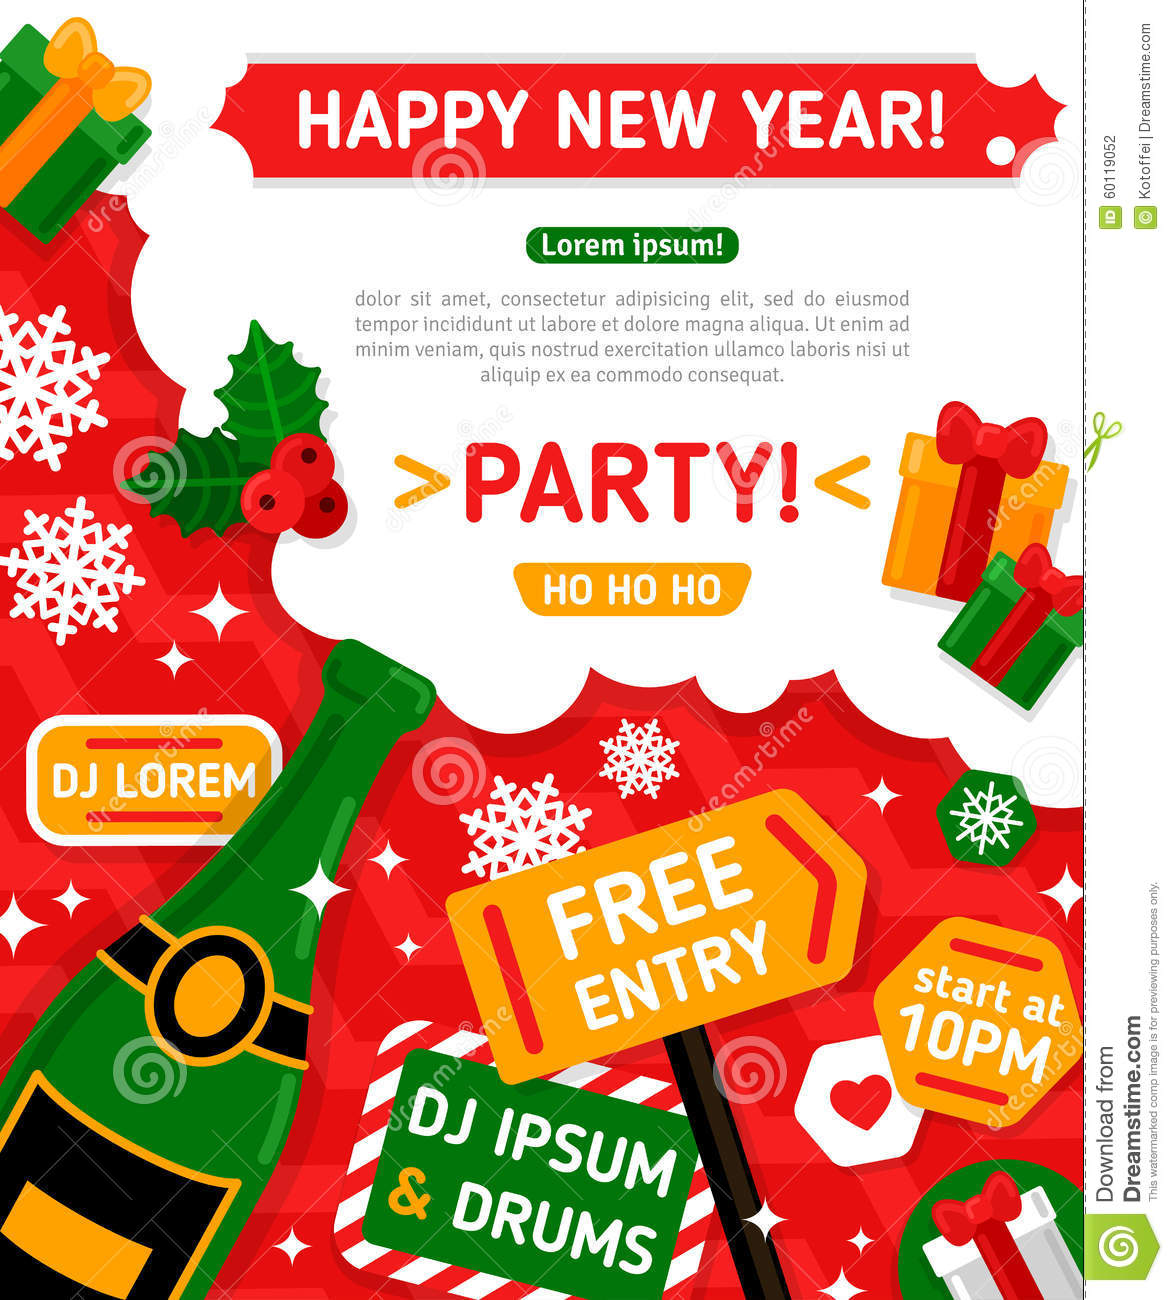 merry christmas and happy new year party invitation card vector illustration champagne bottle with foam typographic design new year 2016 poster